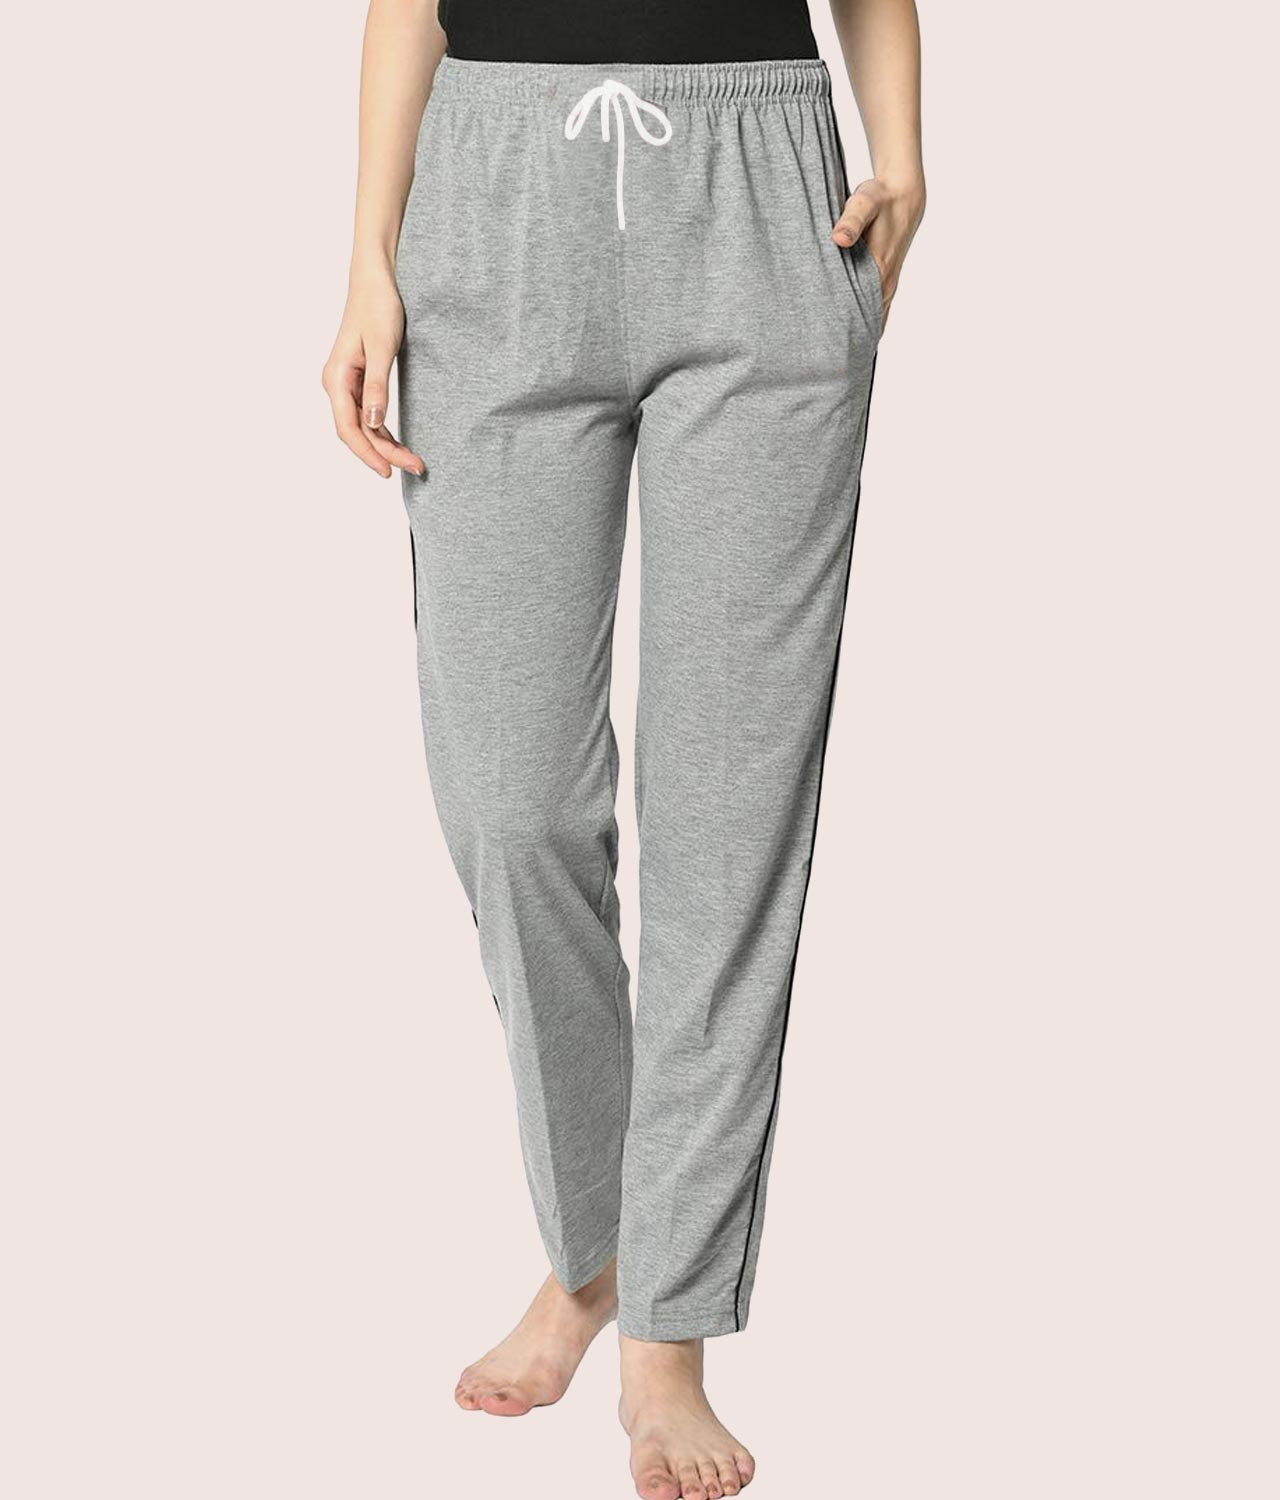 Buy Track Pants For Women Online At Low Price